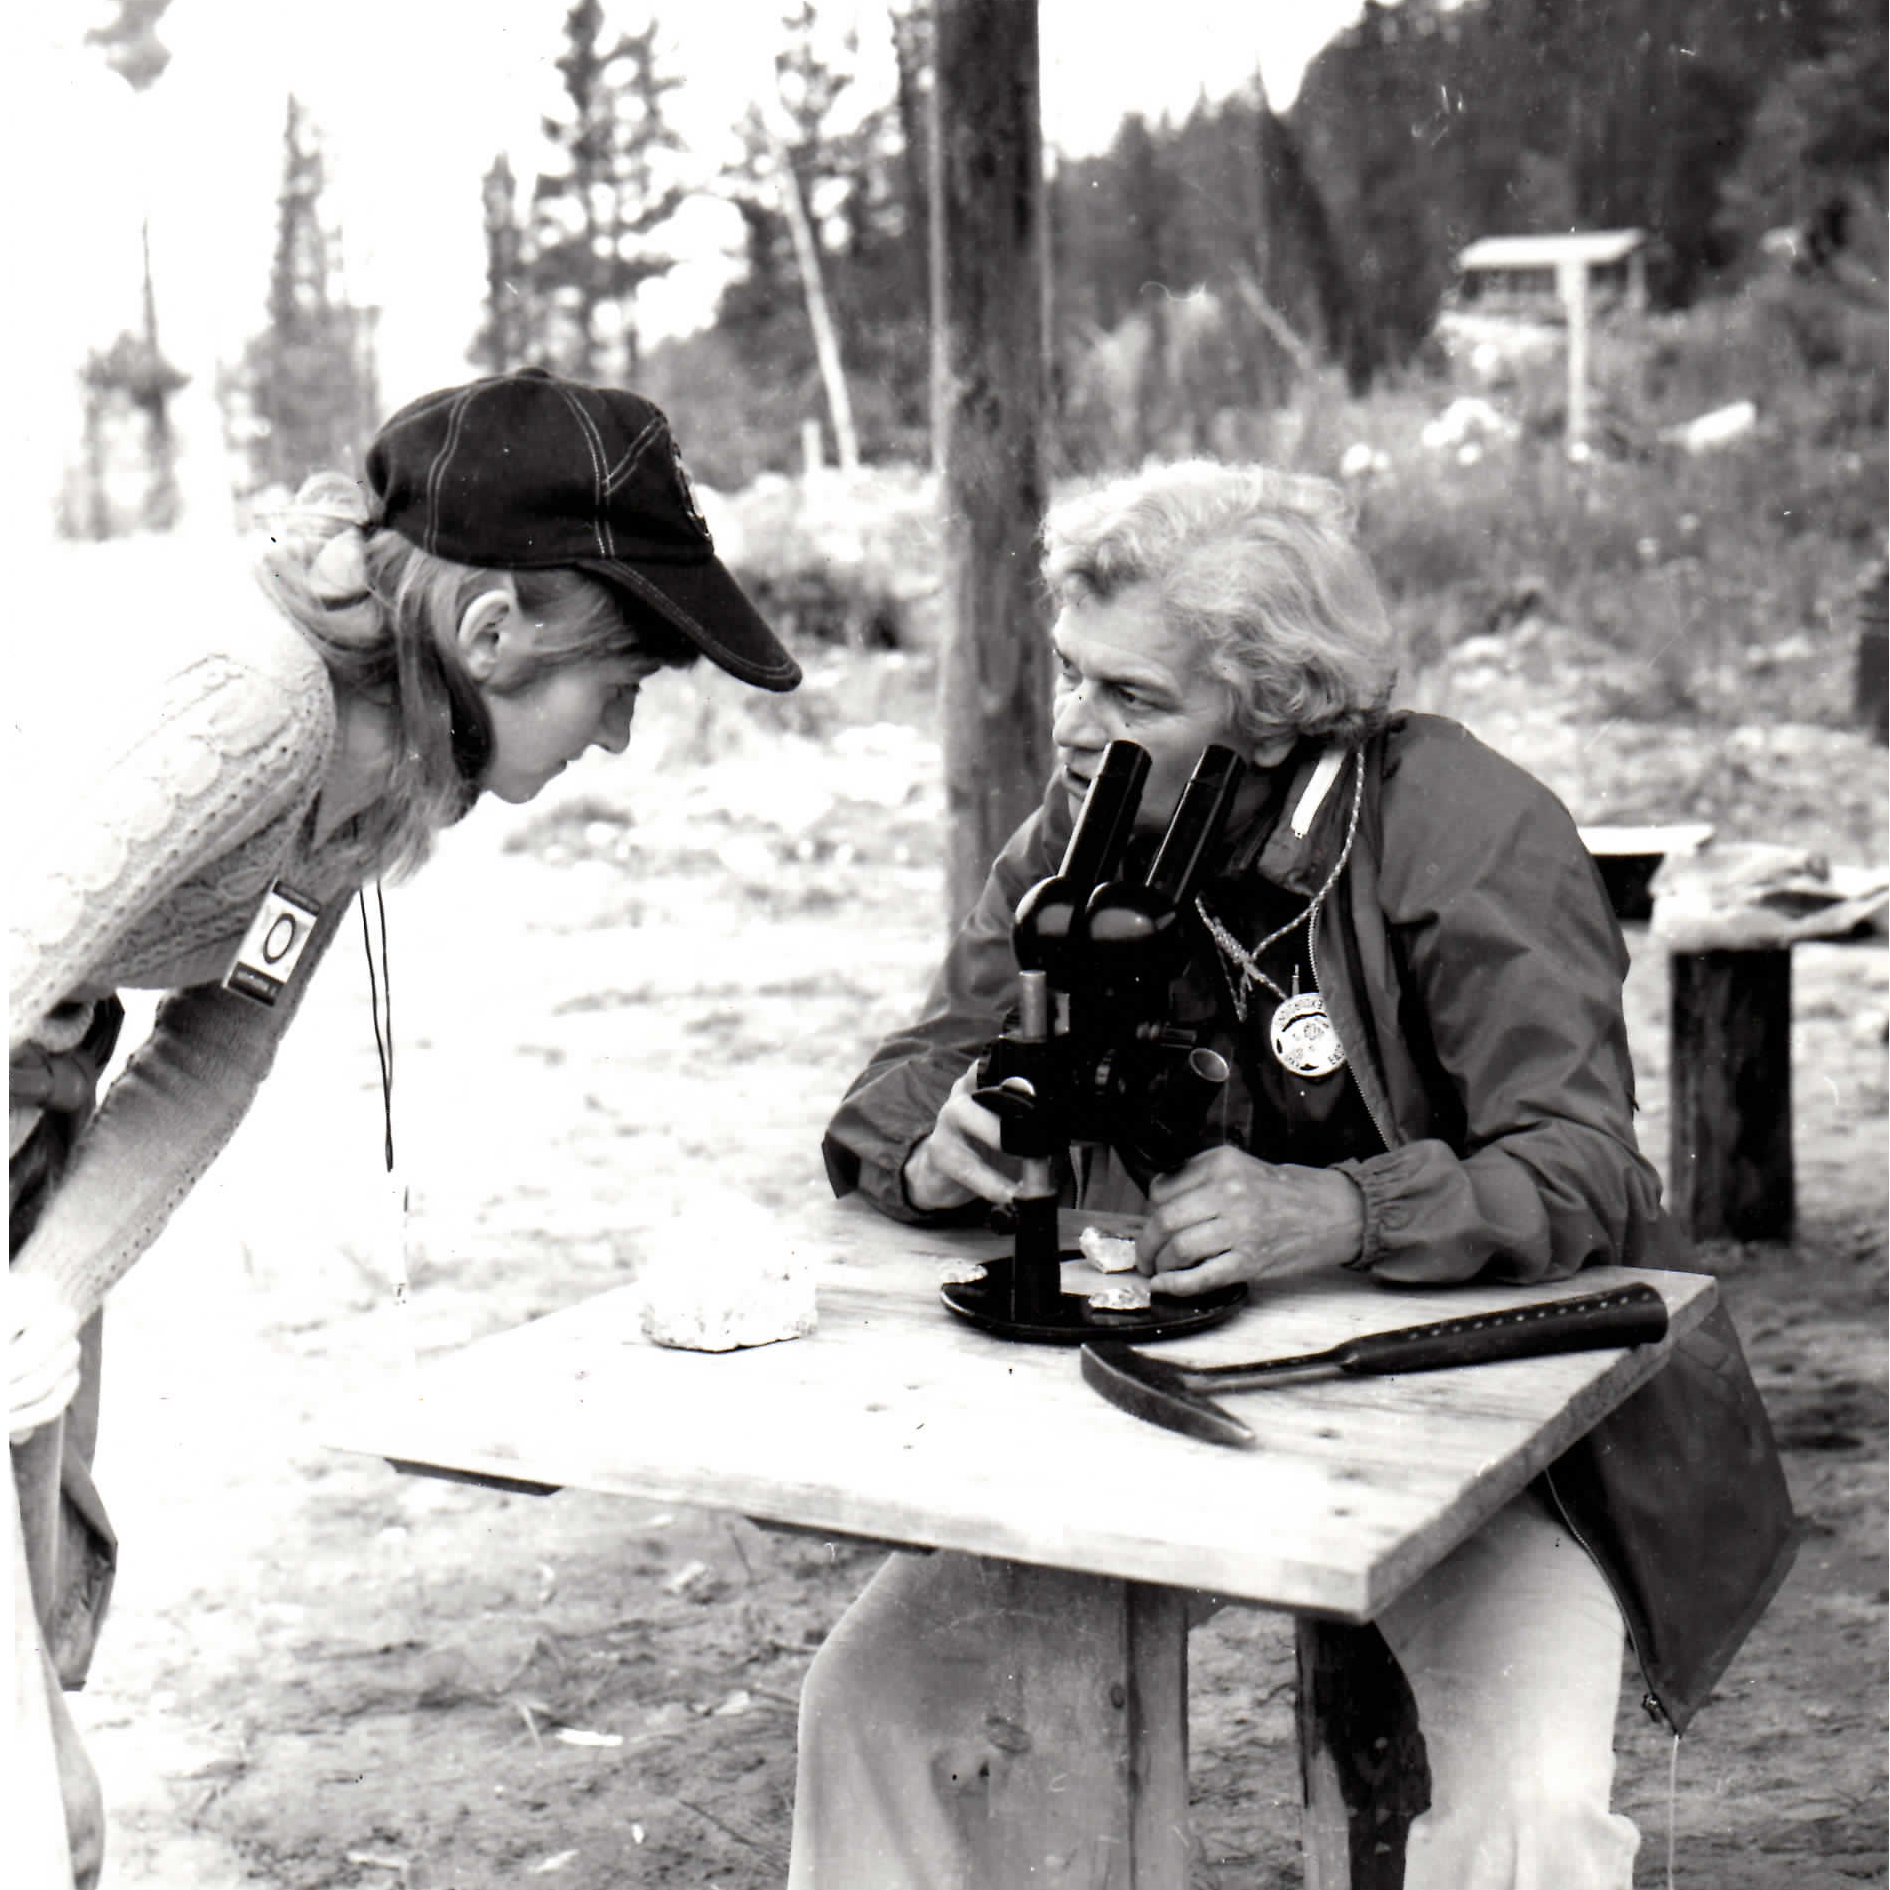 Dr. Schmidt in the field with her microscope in 1968 in Czechoslovakia